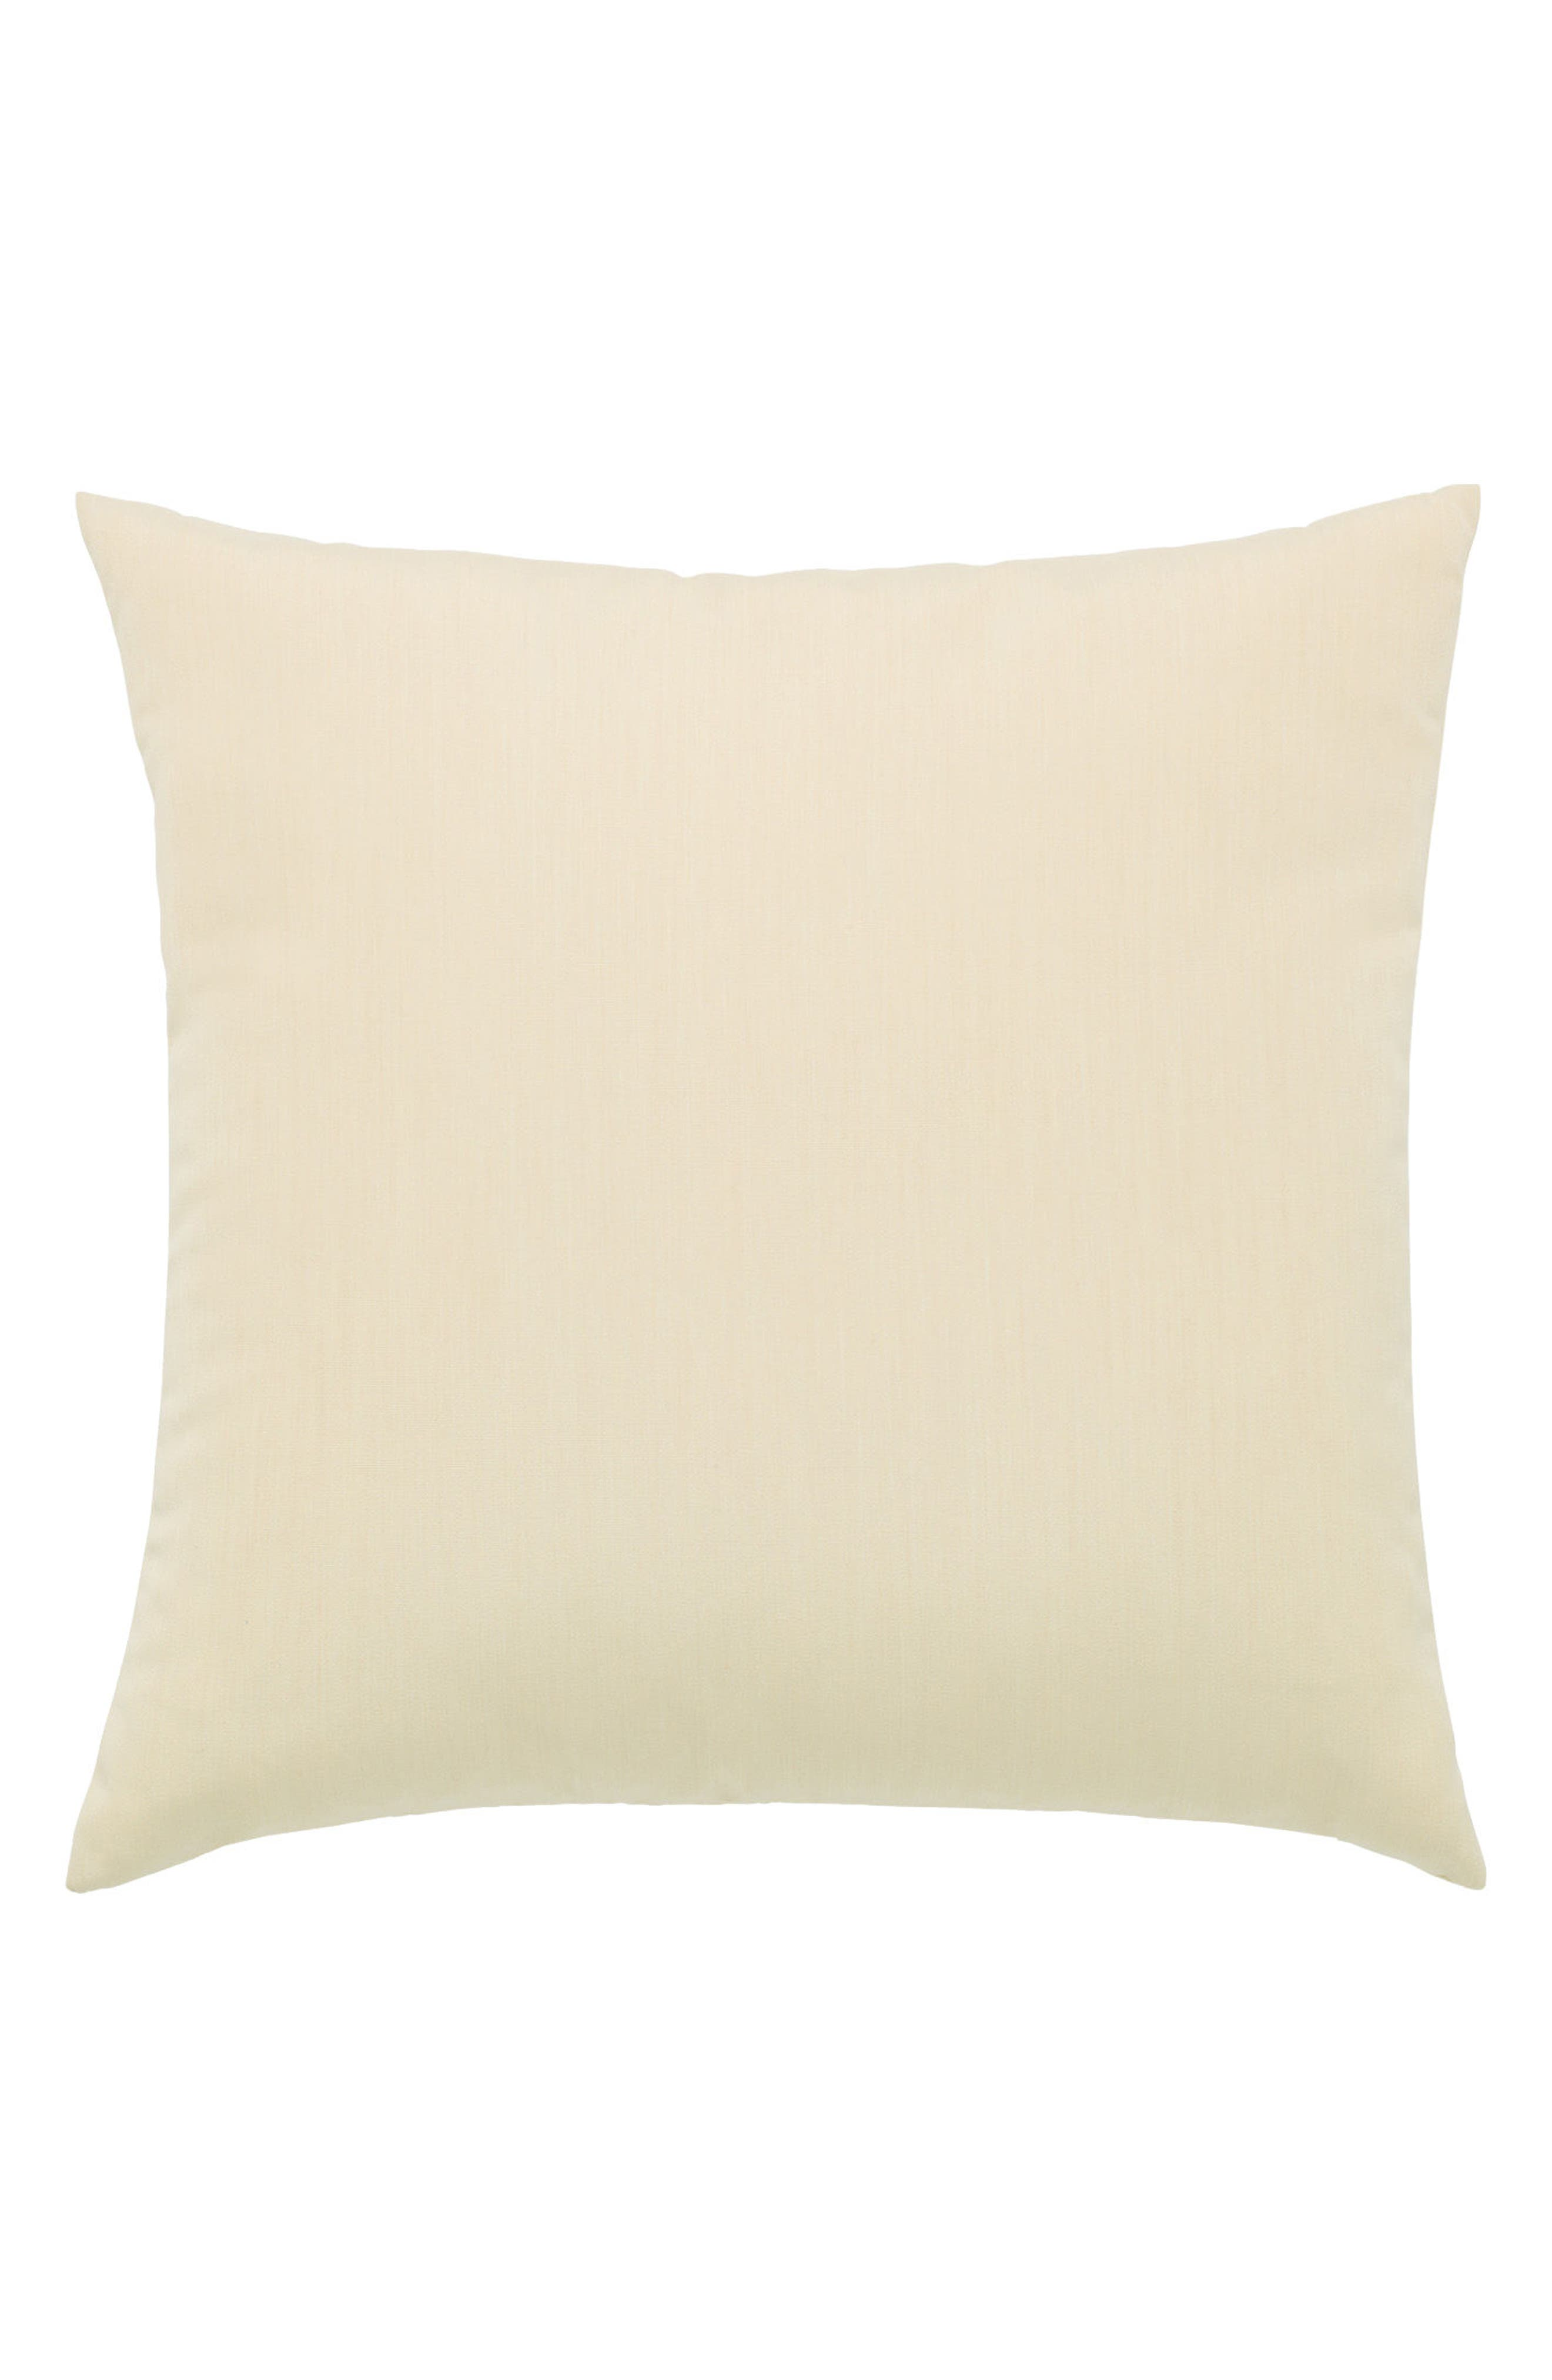 Deco Indoor/Outdoor Accent Pillow,                             Alternate thumbnail 2, color,                             400